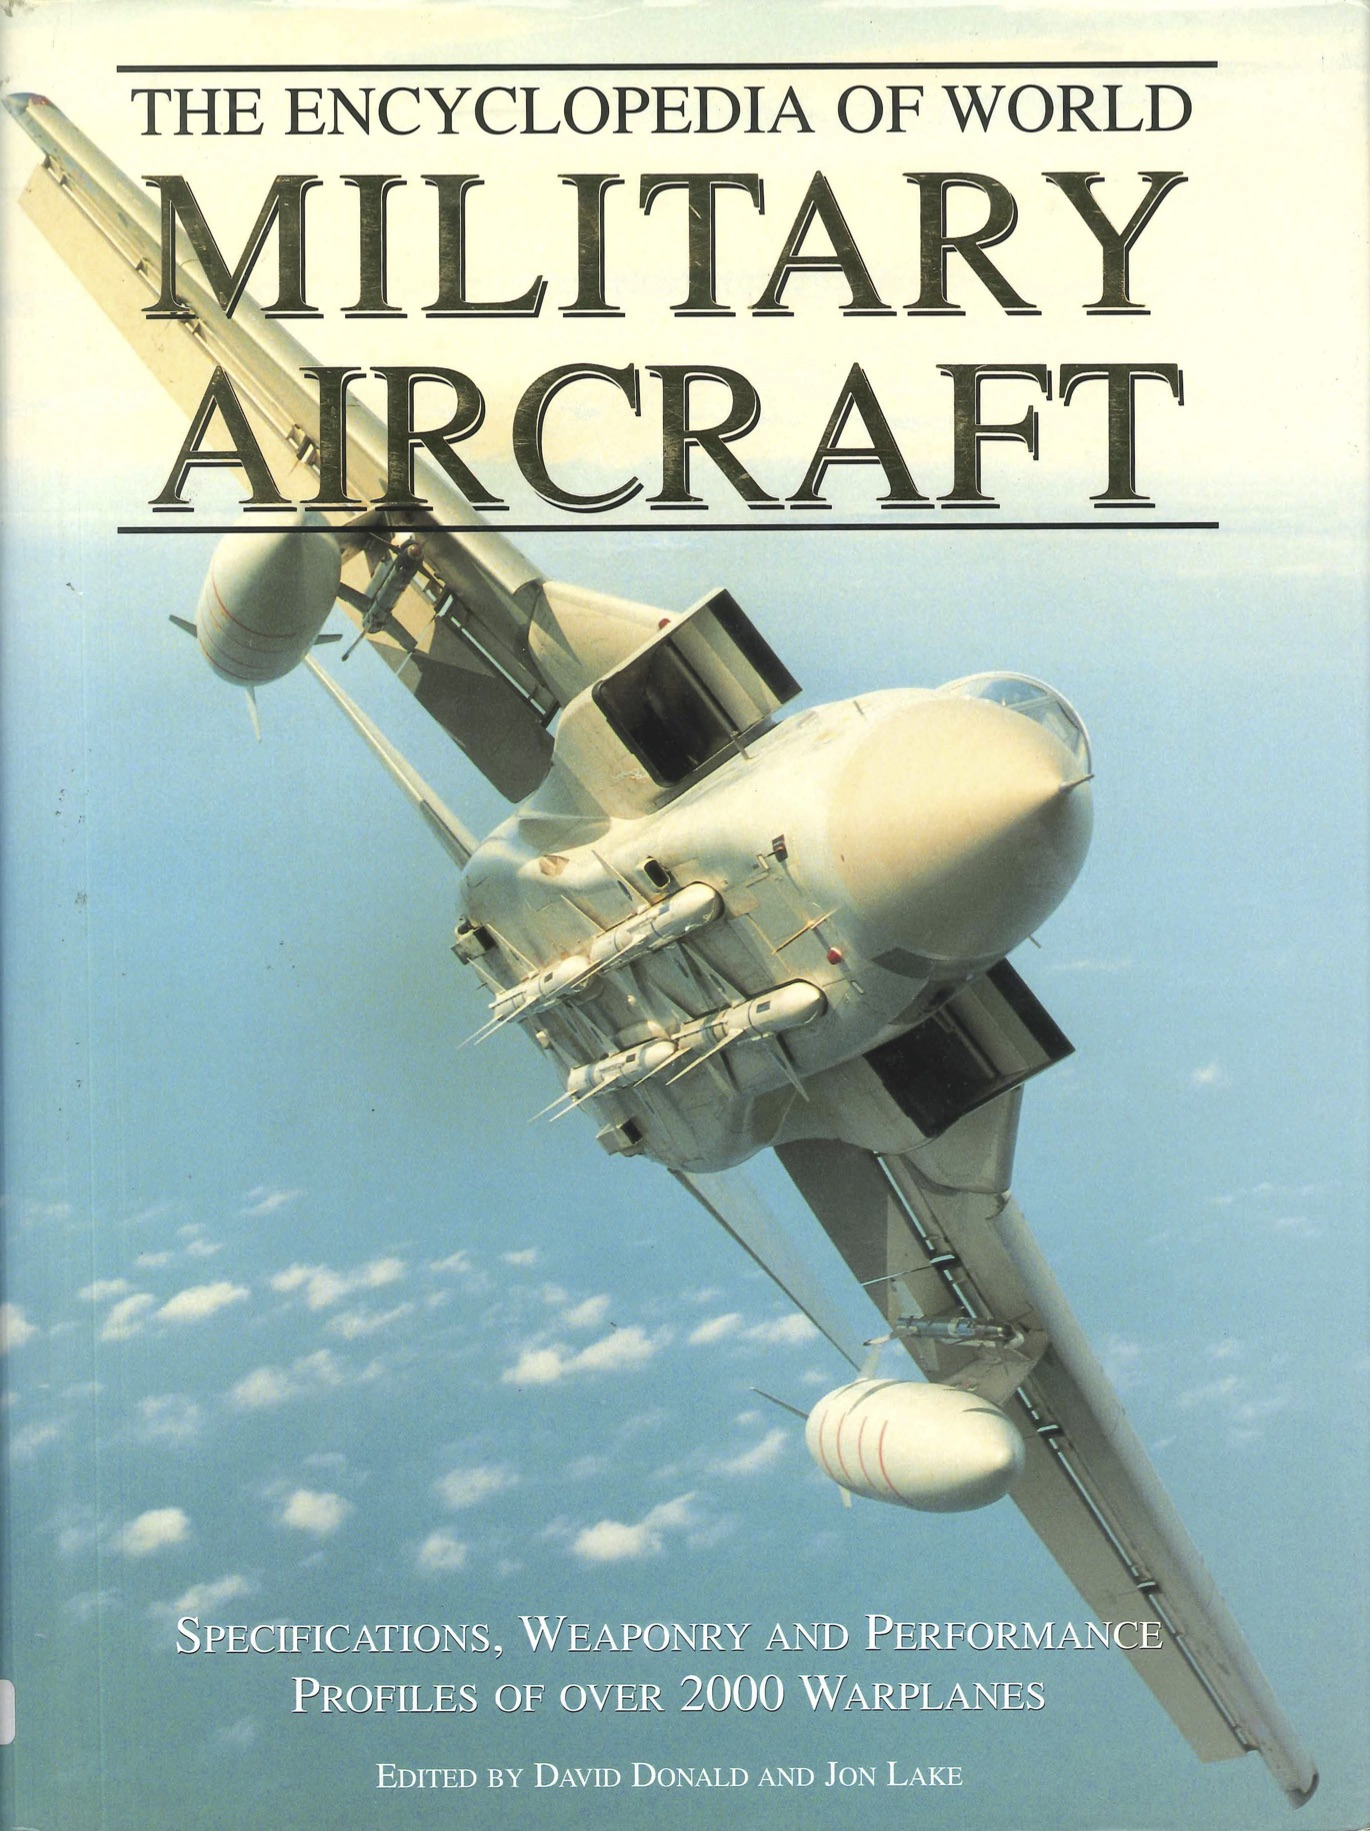 The Encyclopedia of World Military Aircraft